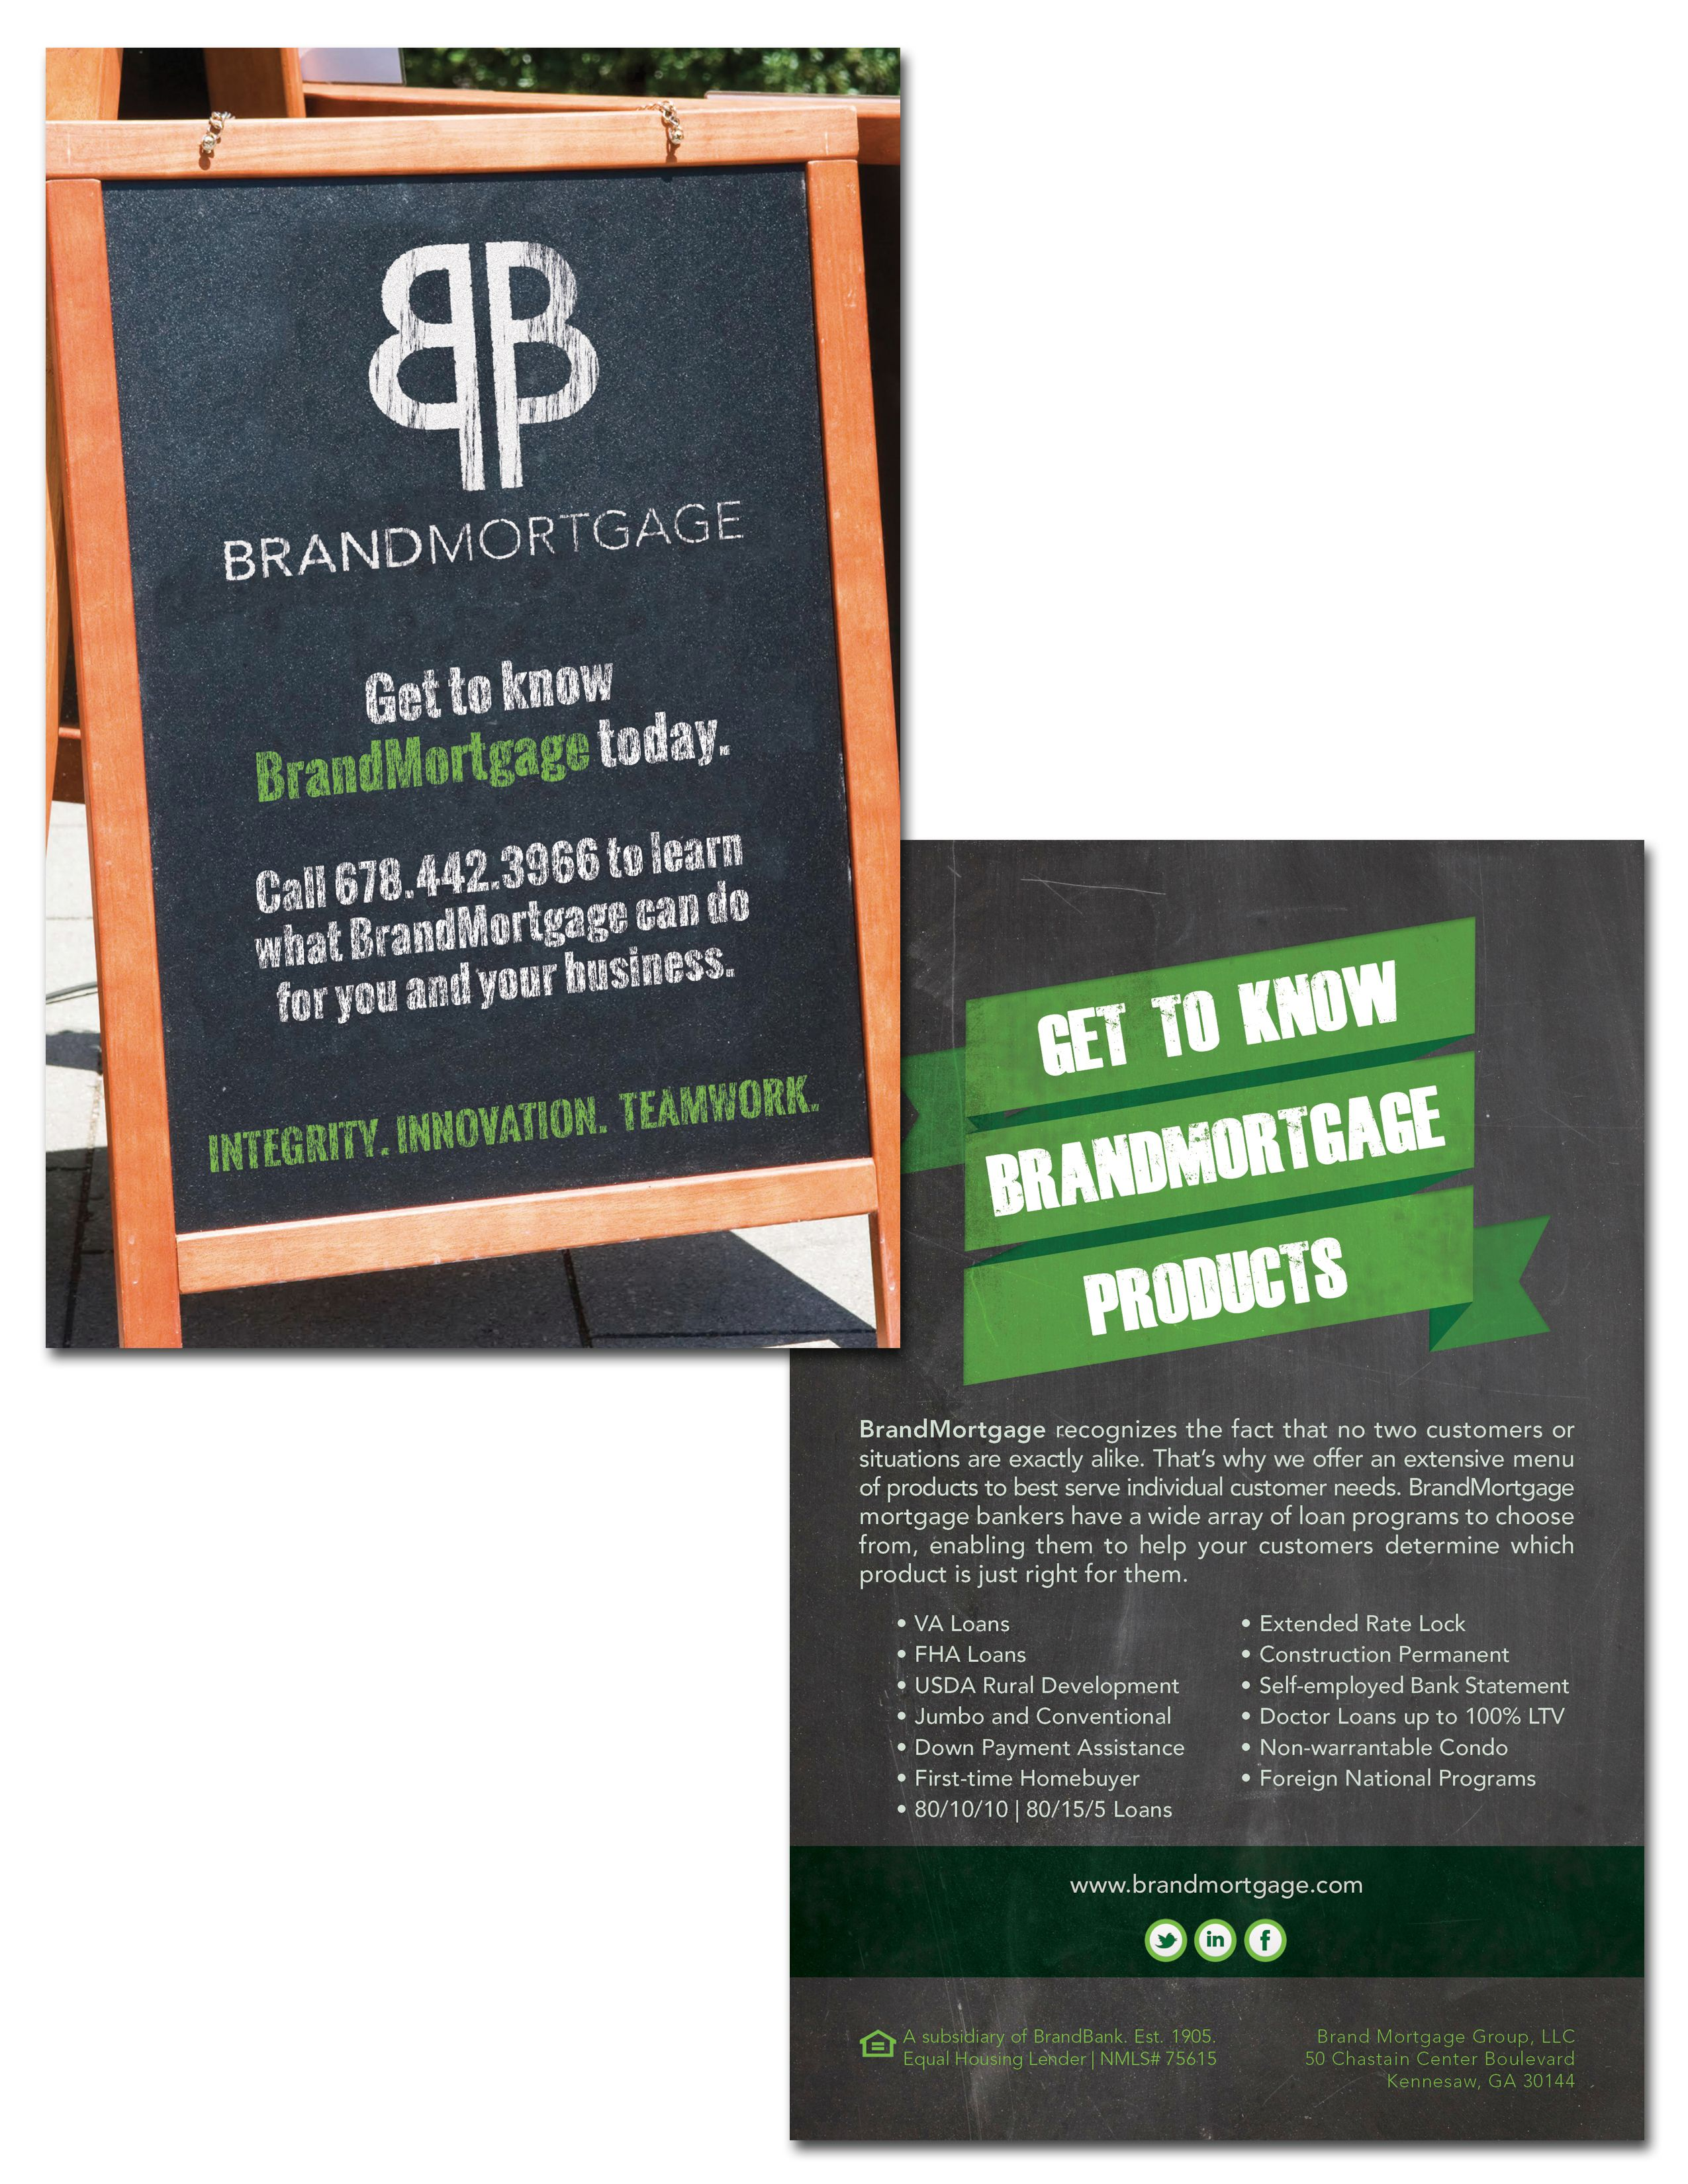 Brandmortgage Drip Campaign Postcard Design Graphic Design